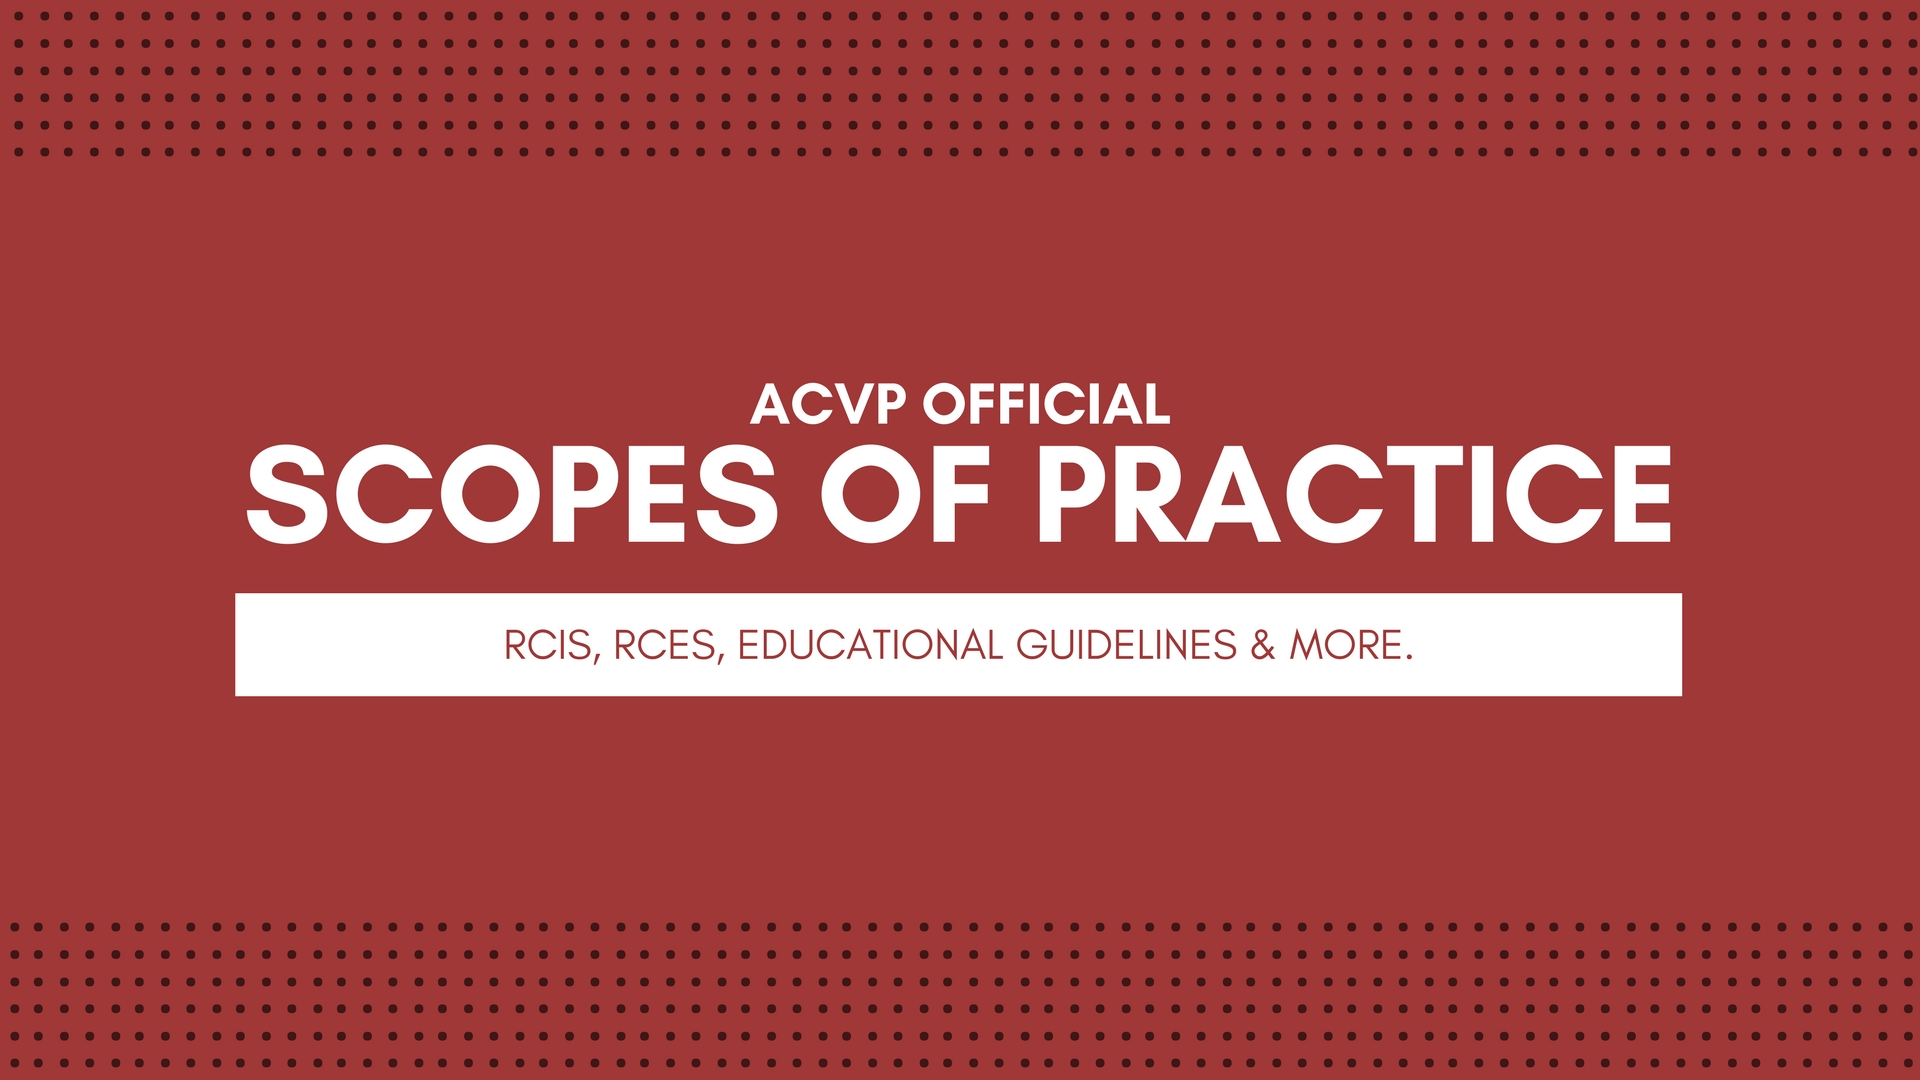 acvp official scope of practice for cardiovascular technologists